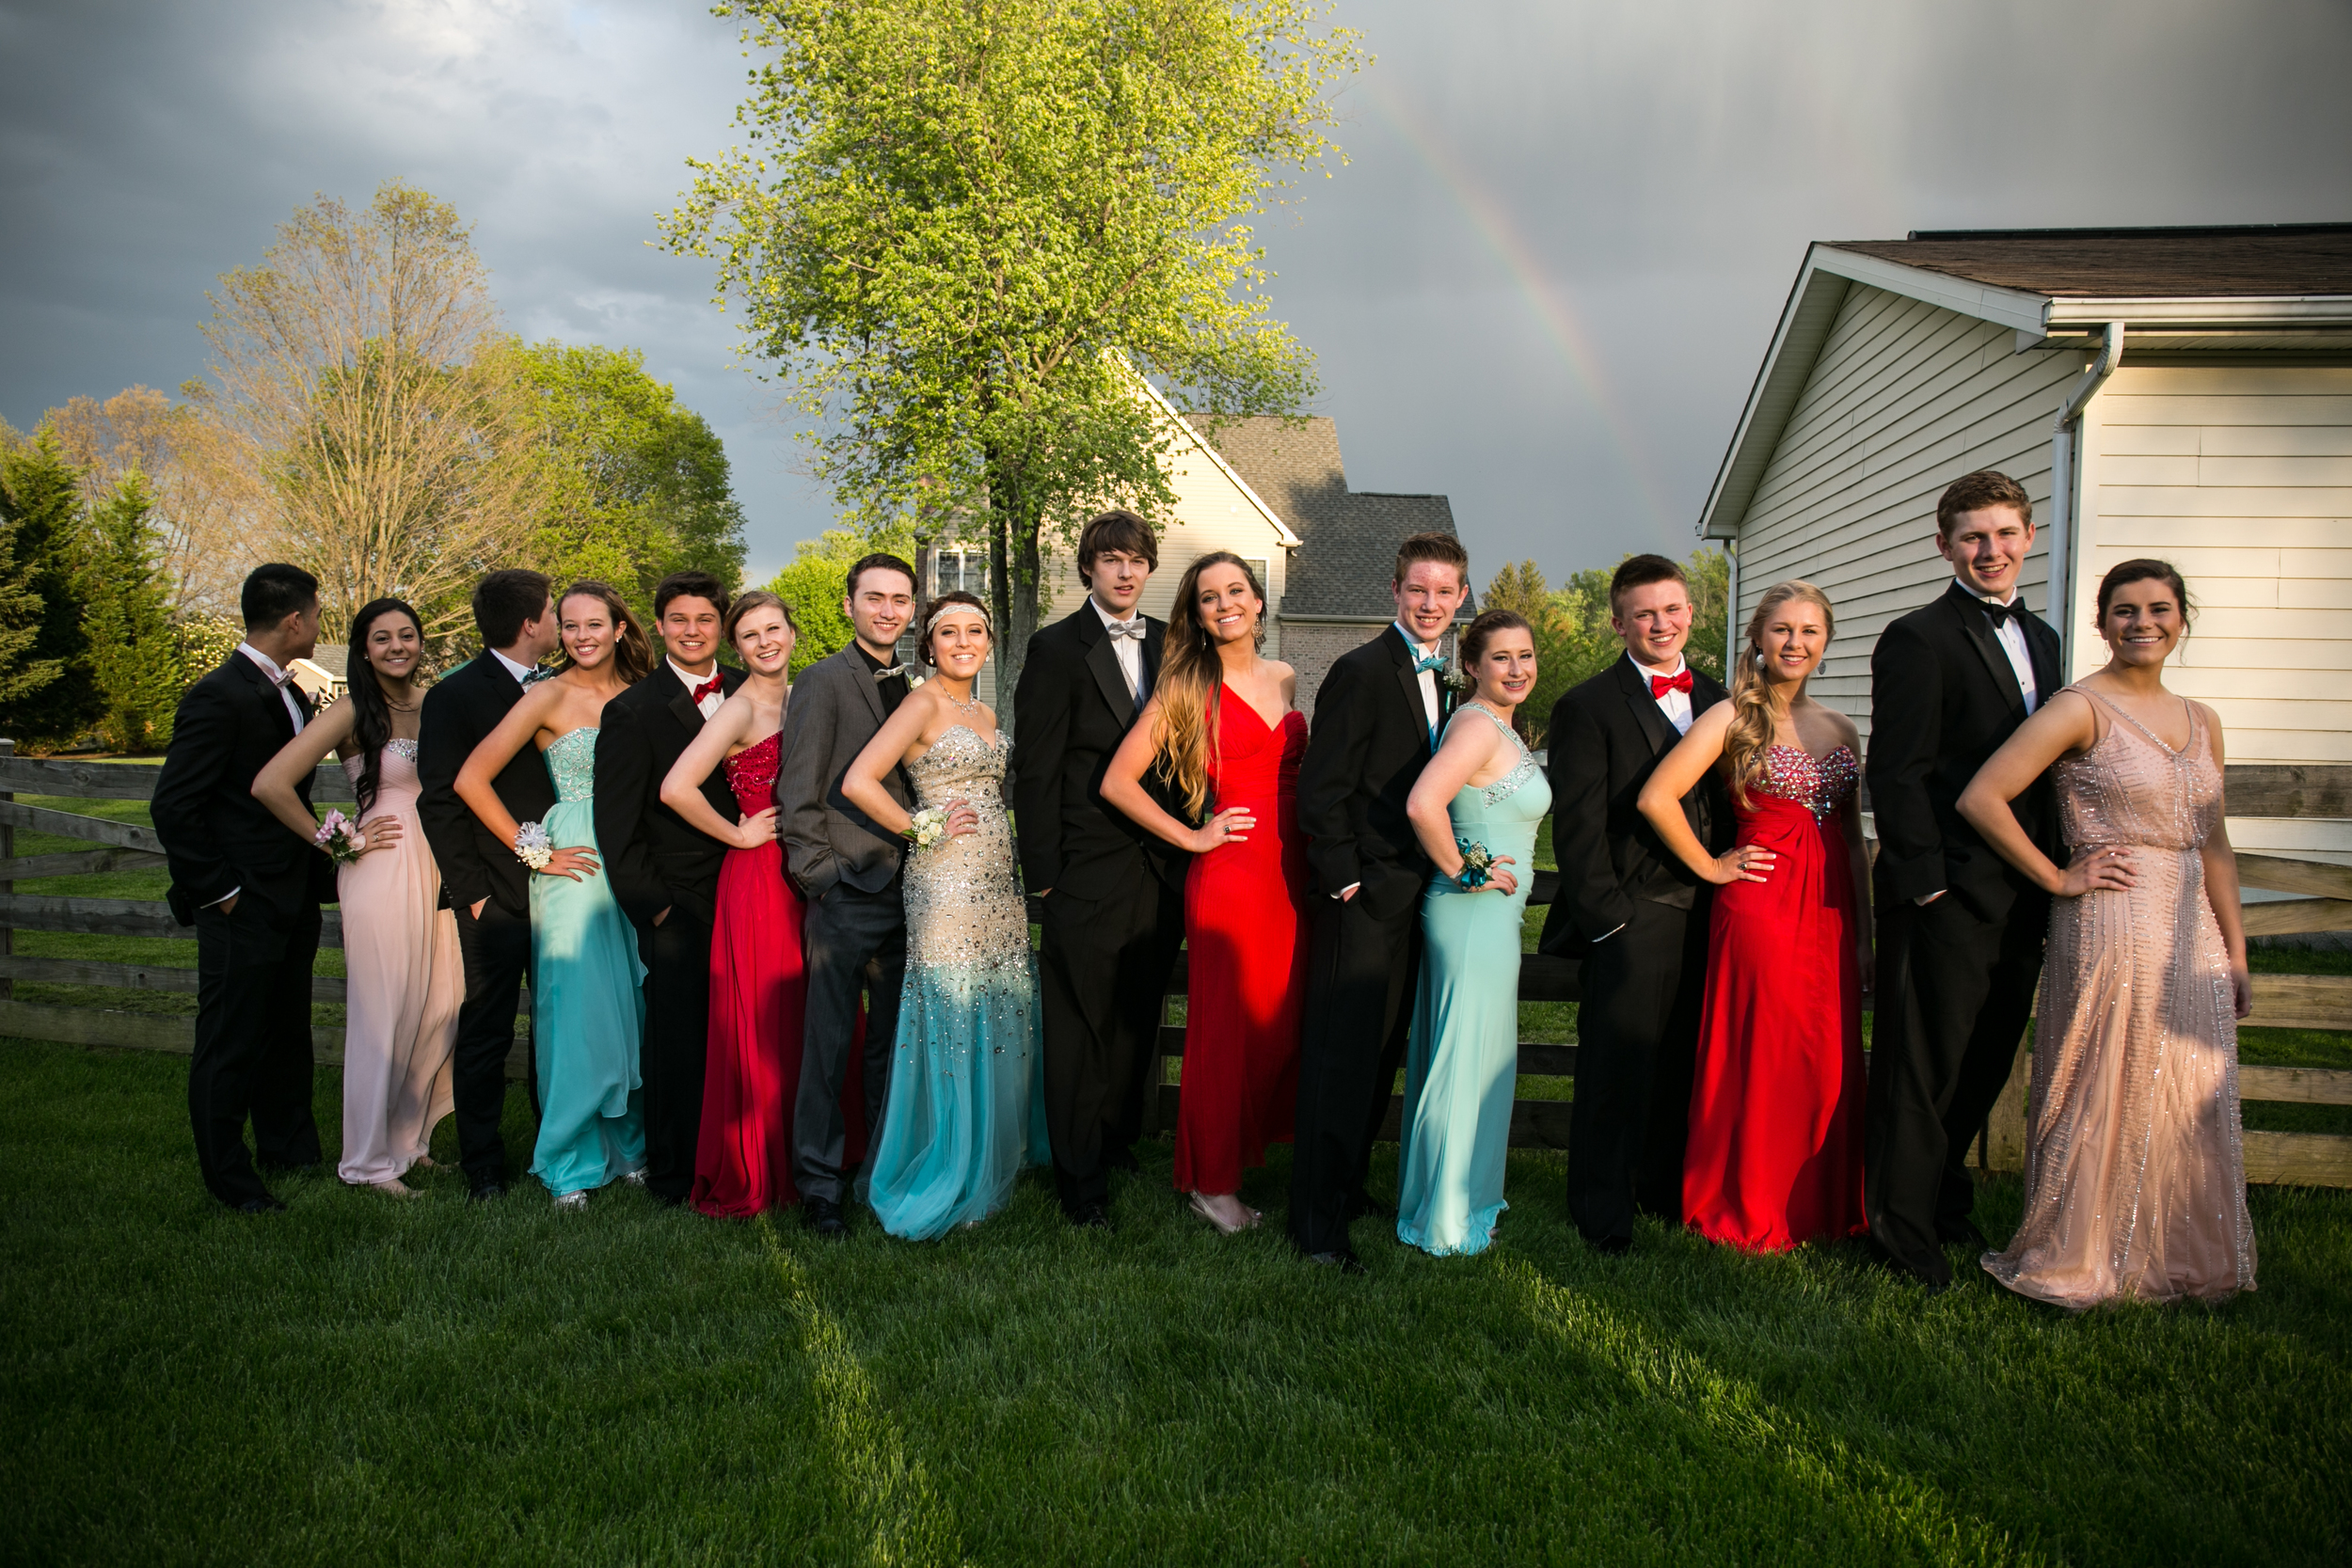 Mount-De-Sales-Pre-Prom-May-2014-43.jpg